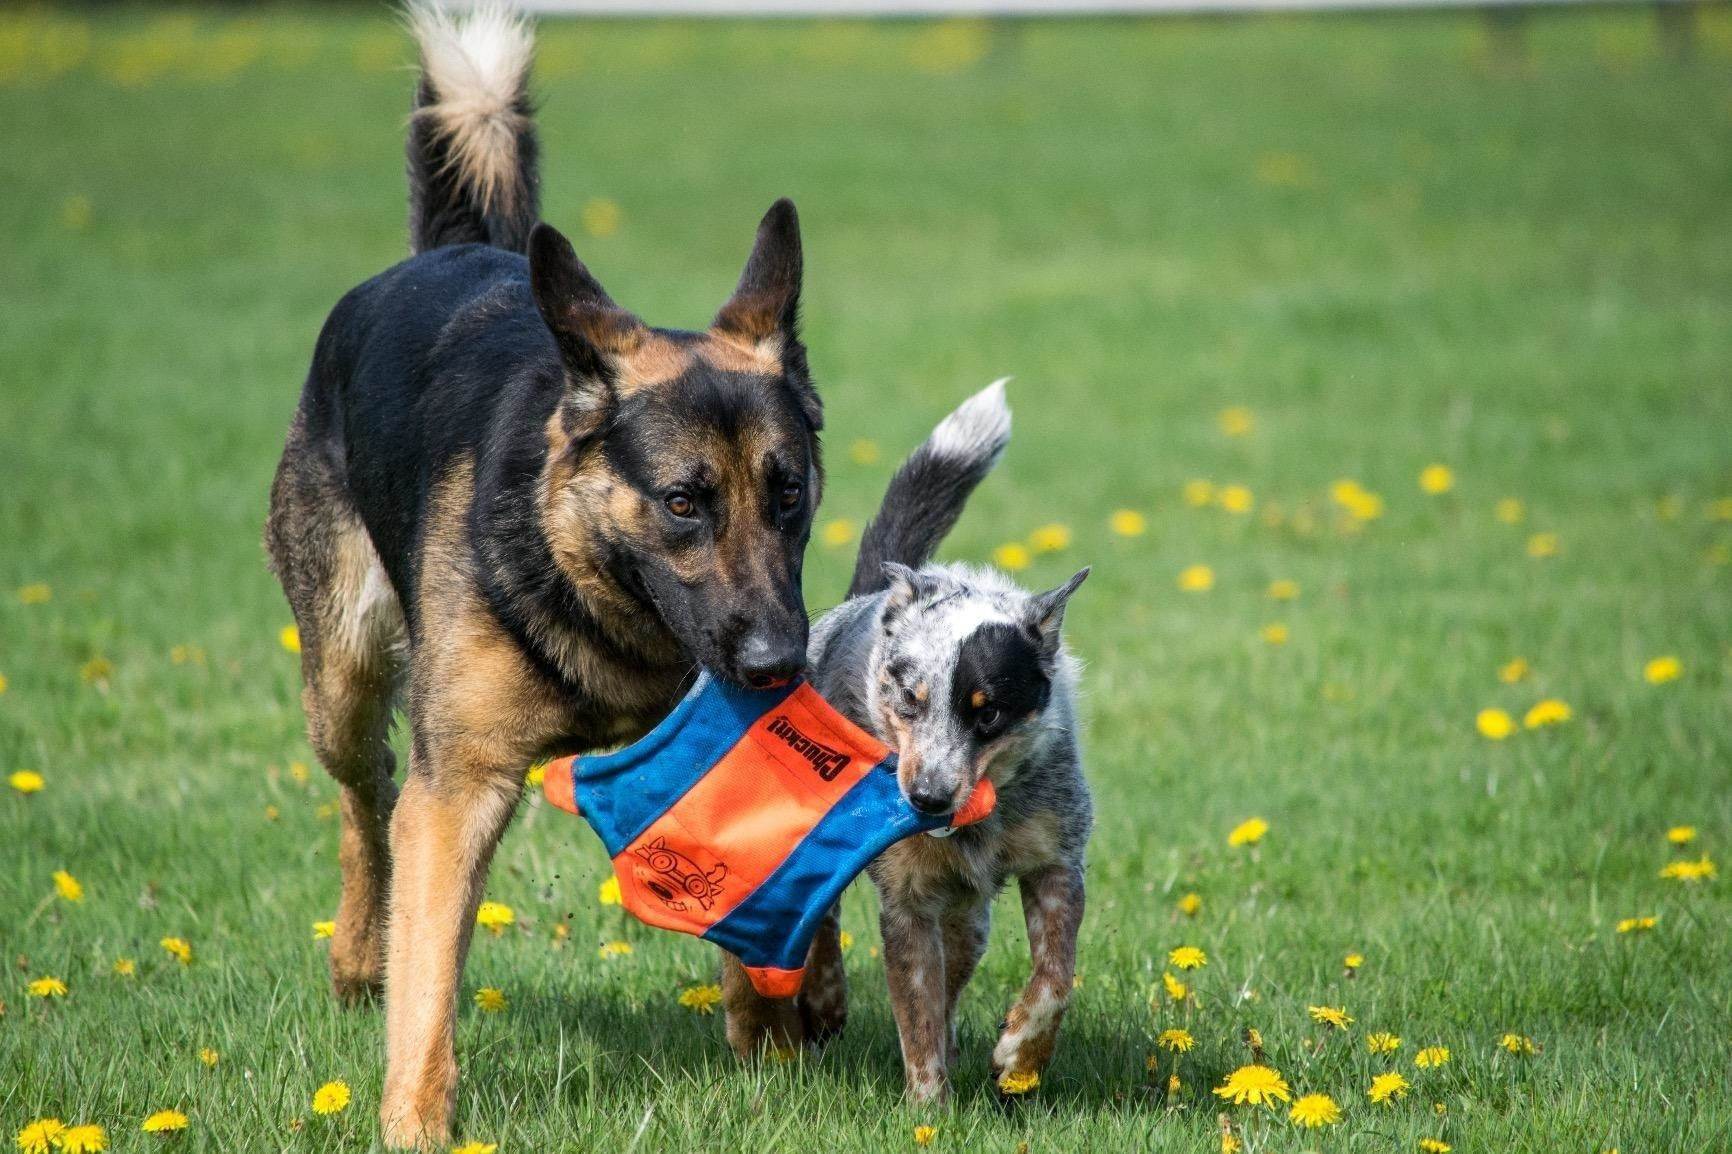 A large German shepherd and a smaller white and brown speckled dog holding the same frisbee toy in their mouth at the same time